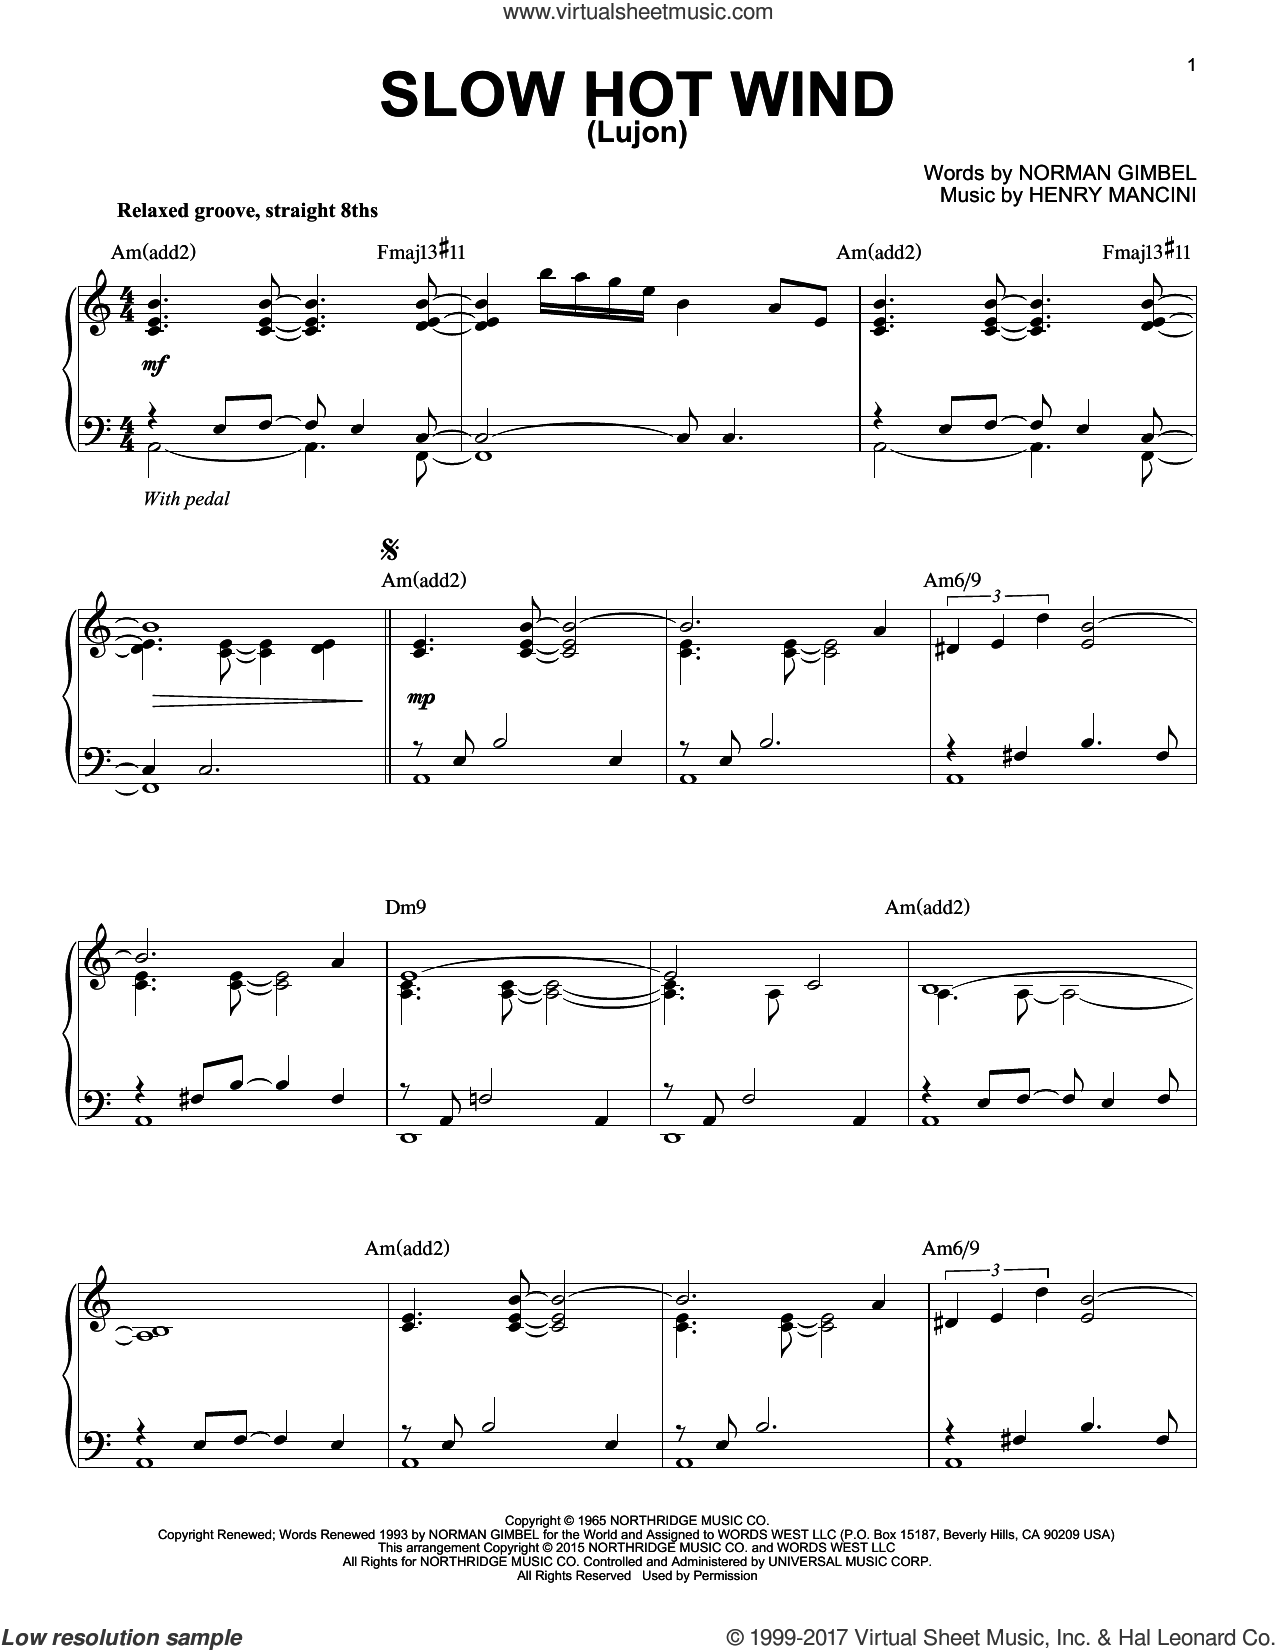 Slow Hot Wind (Lujon) sheet music for piano solo by Henry Mancini and Norman Gimbel, intermediate skill level